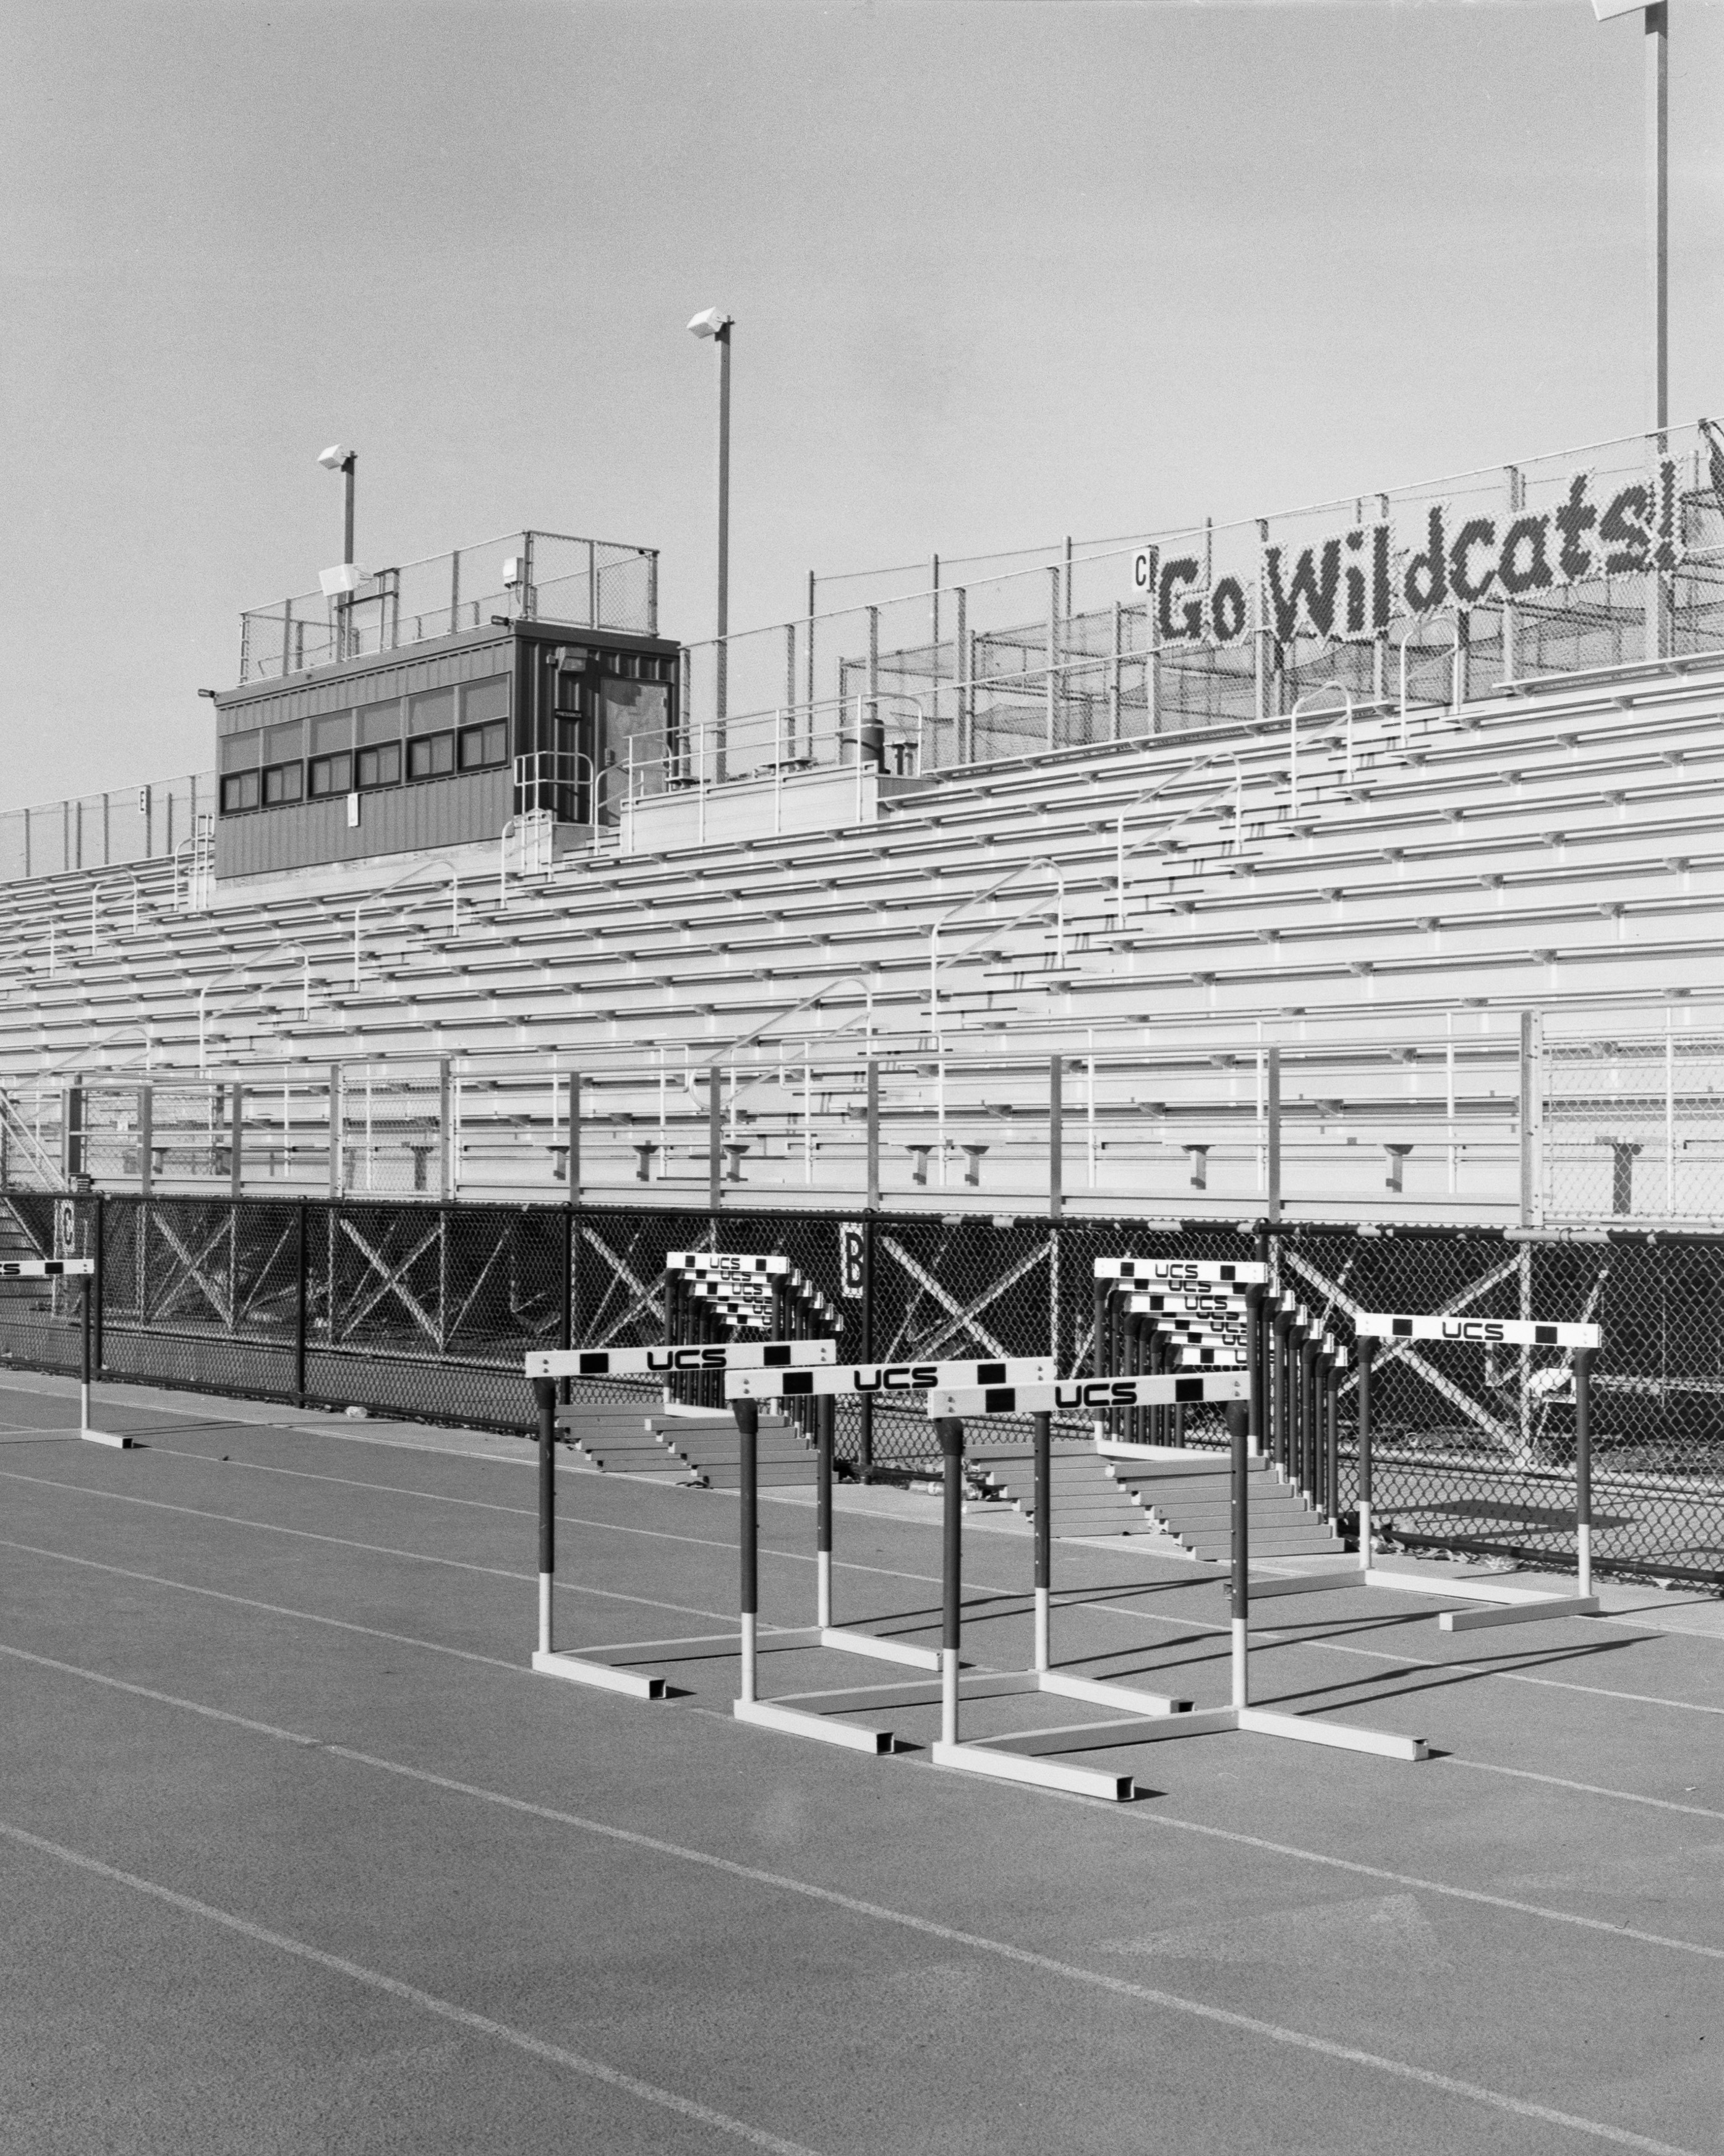 """A black-and-white photograph of several hurdles sitting on a high school running track. Behind them are bleachers, several stories tall. A display on the fence at the top of the bleachers spells out """"Go Wildcats!"""""""